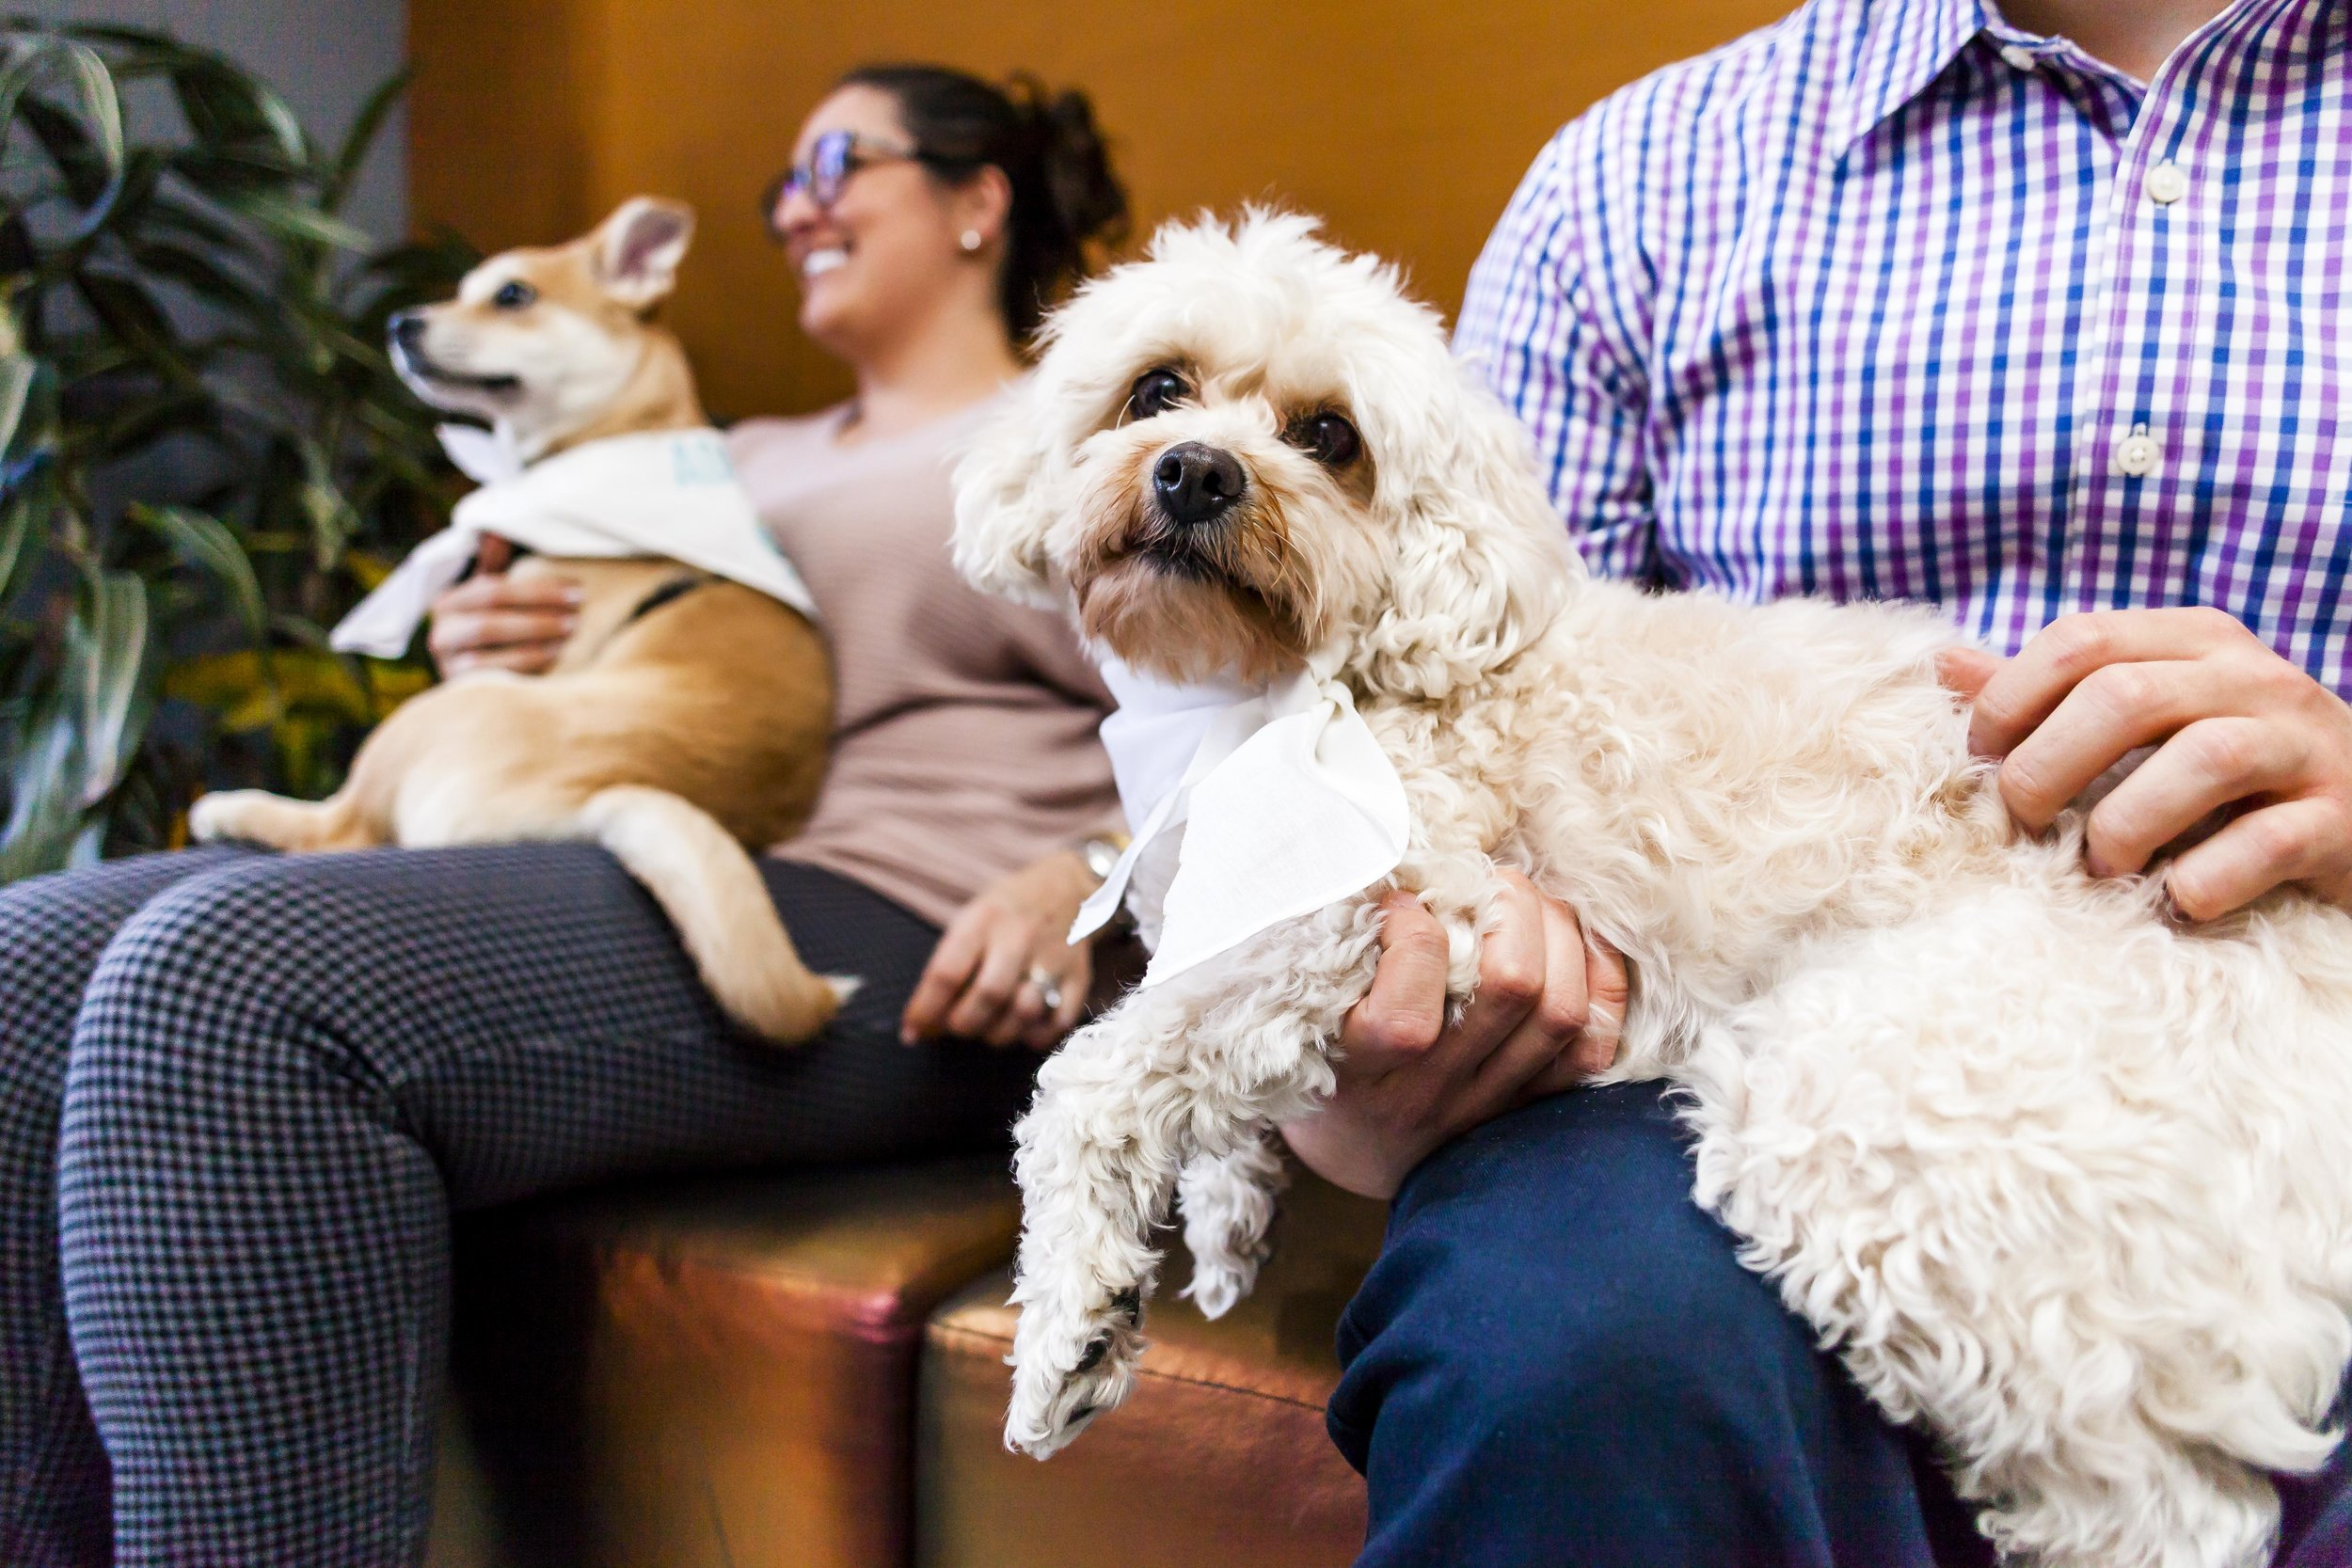 FosterDogs_DiscoveryPuppyParty_20180326_4871_©StaceyAxelrod.jpg